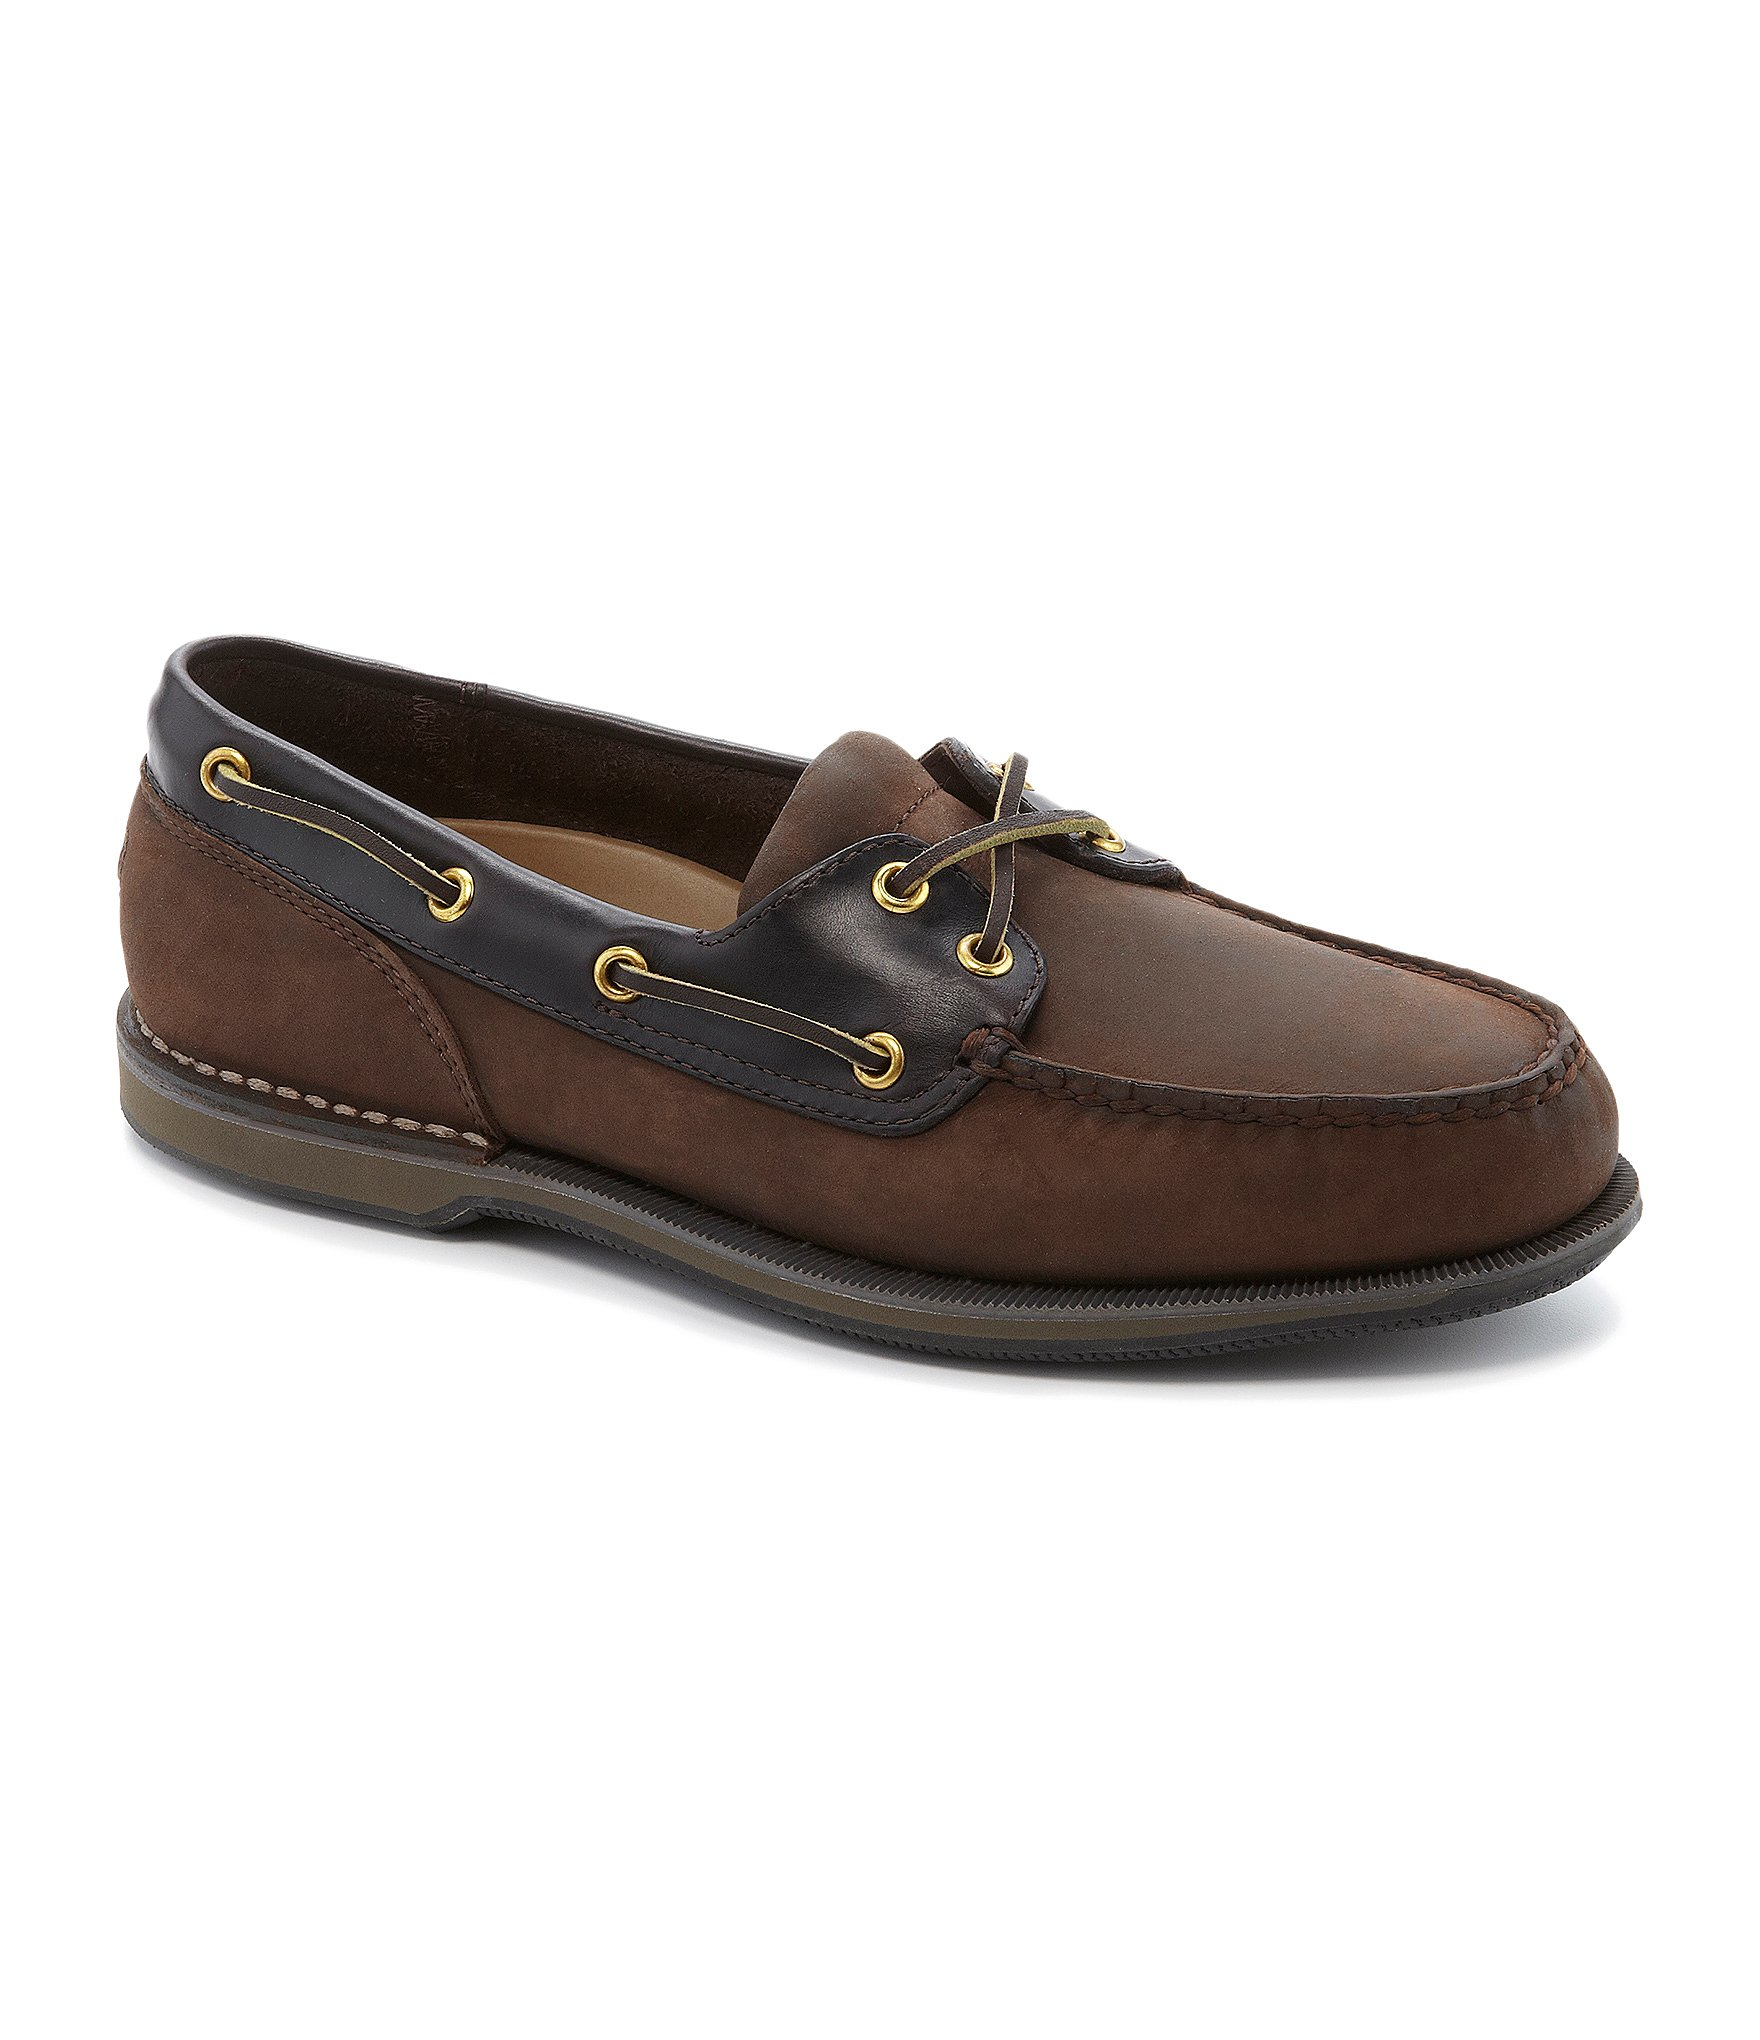 Perth Shoes Rockport Perth Casual Boat Shoes In Brown For Men Lyst